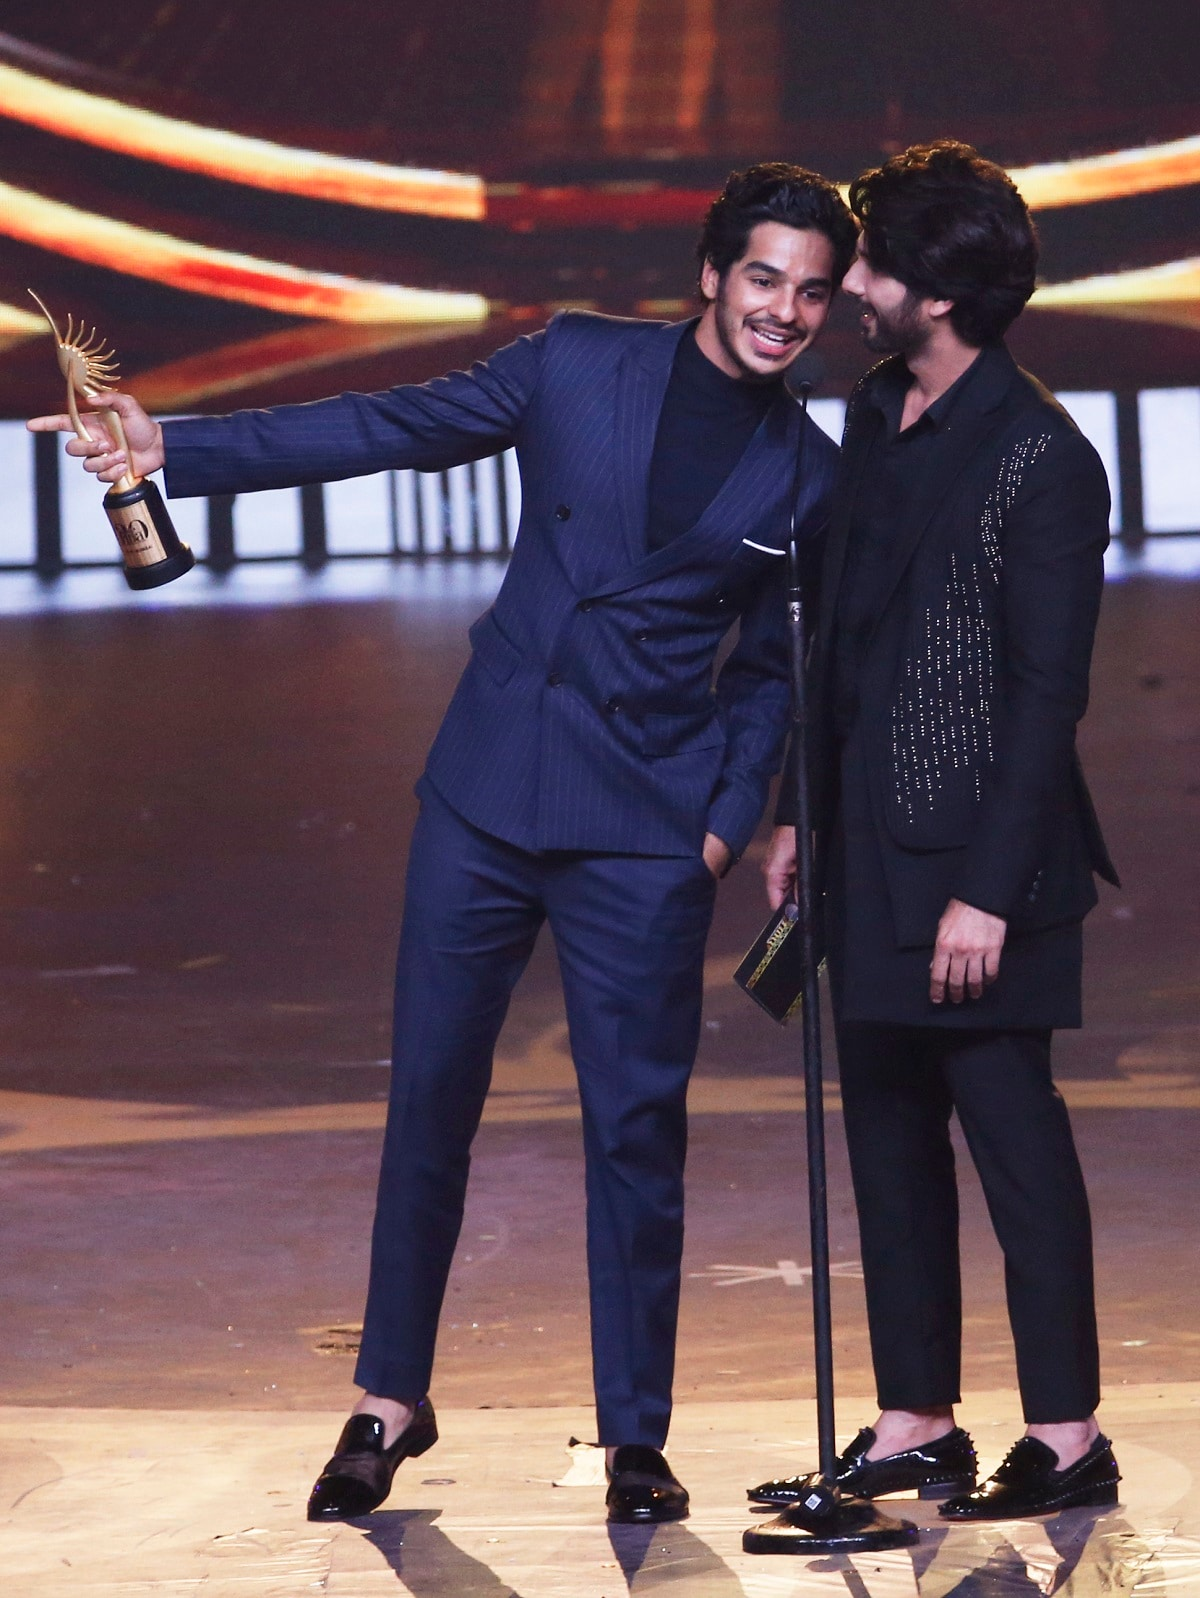 Bollywood actor Ishaan Khatter, left, speaks with his half-brother Shahid Kapoor after he receives the award for Best Debut male actor role during the 20th International Indian Film Academy (IIFA) awards ceremony. (AP Photo/Rafiq Maqbool)